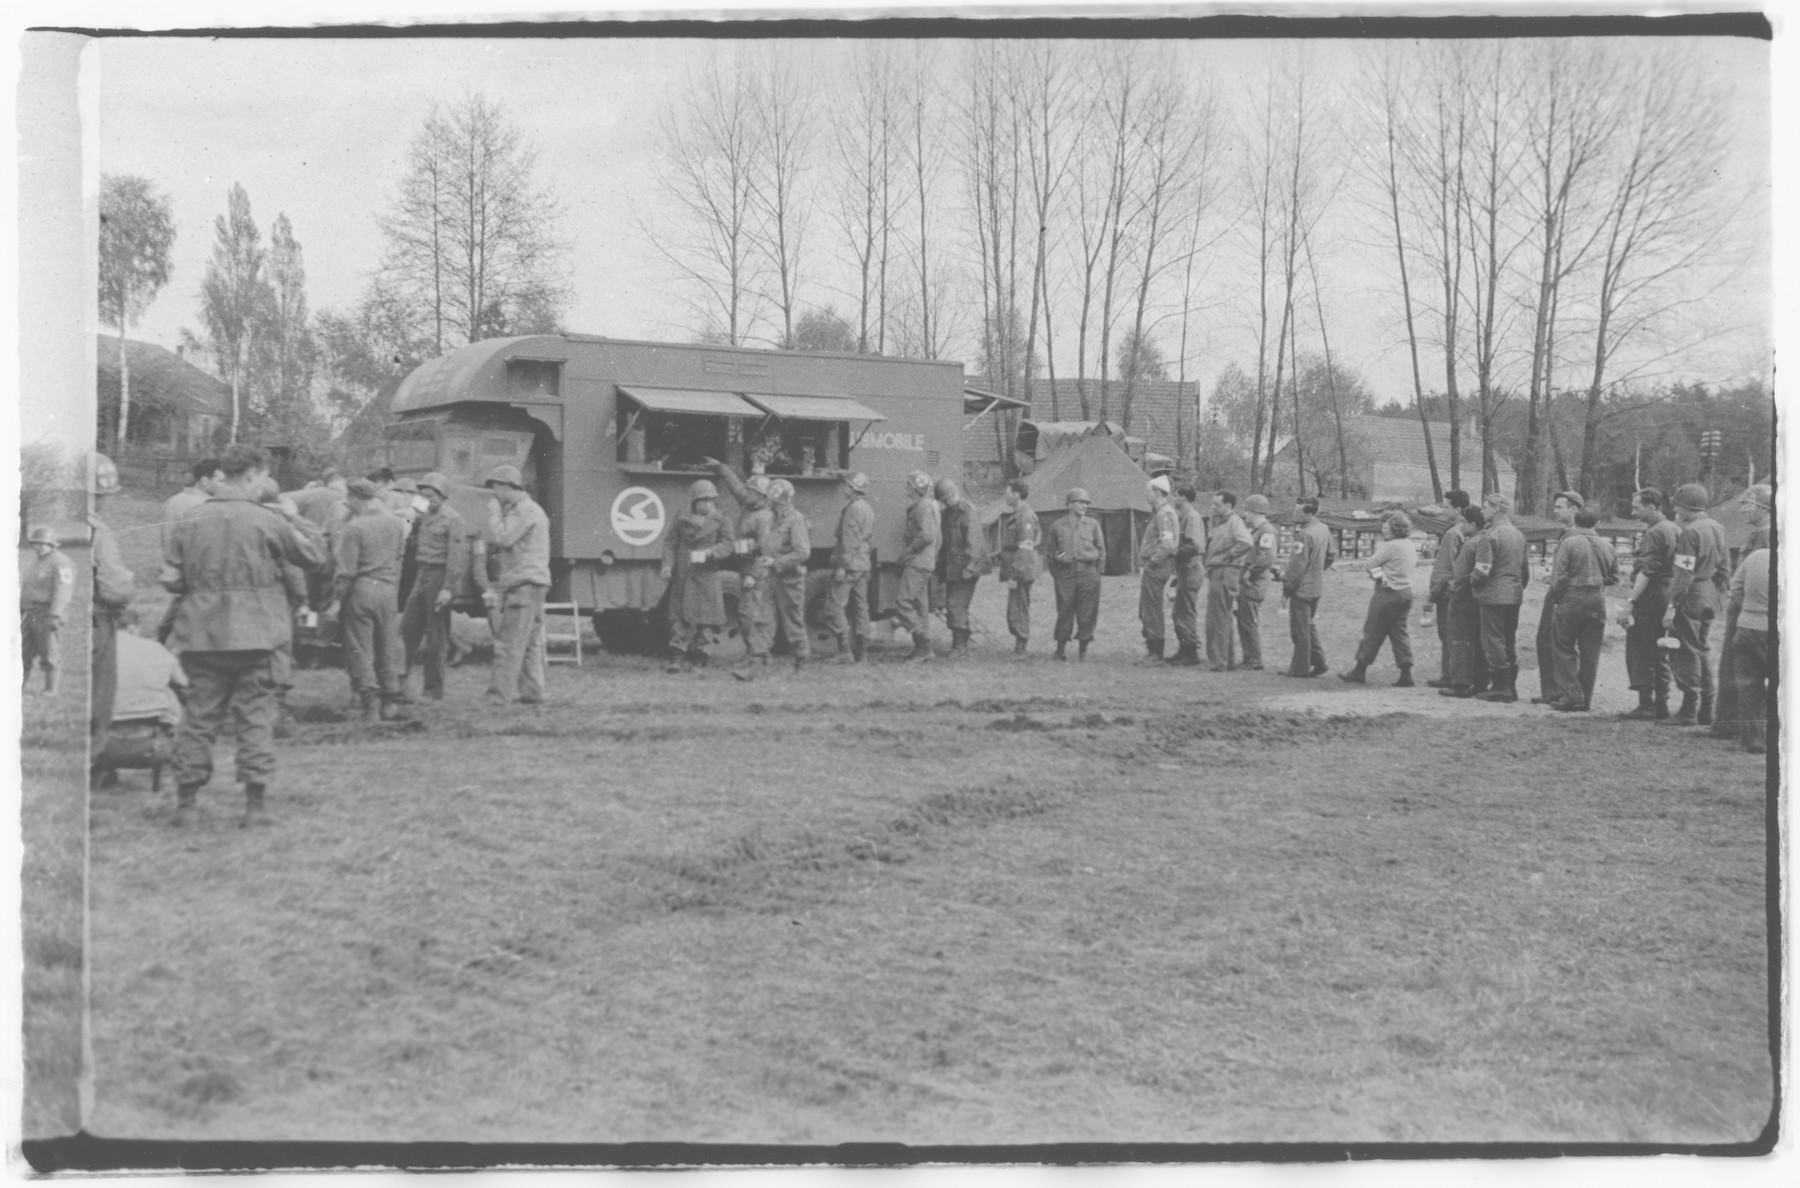 US Army Officers From The 91st Evacuation Hospital Unit Stand In Line For Food